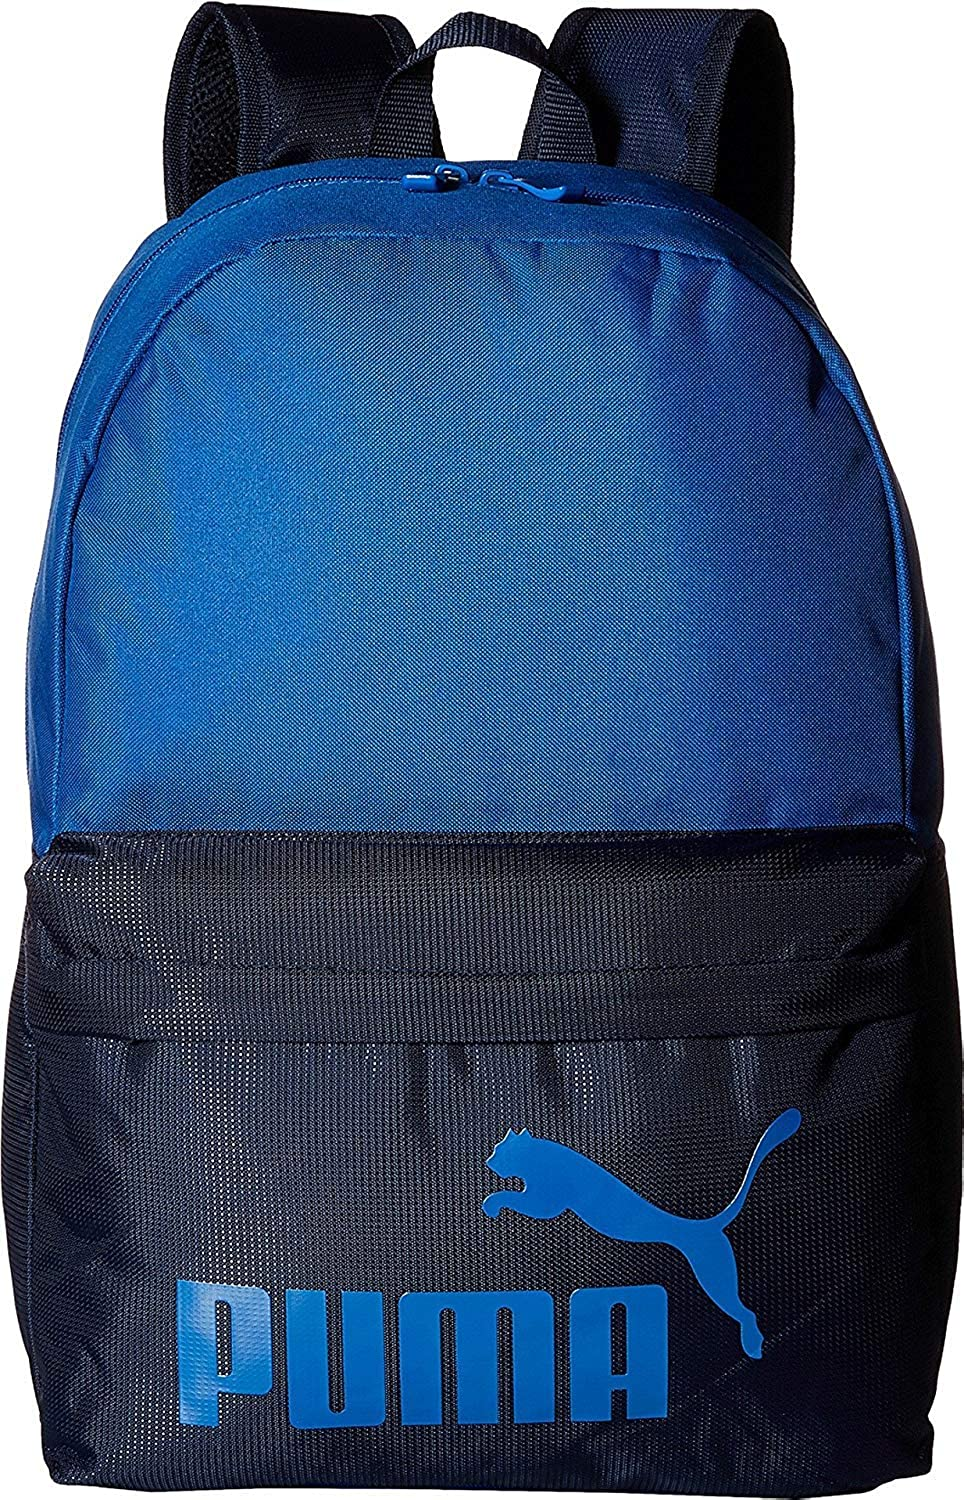 PUMA Evercat Lifeline Backpack Blue Combo One Size